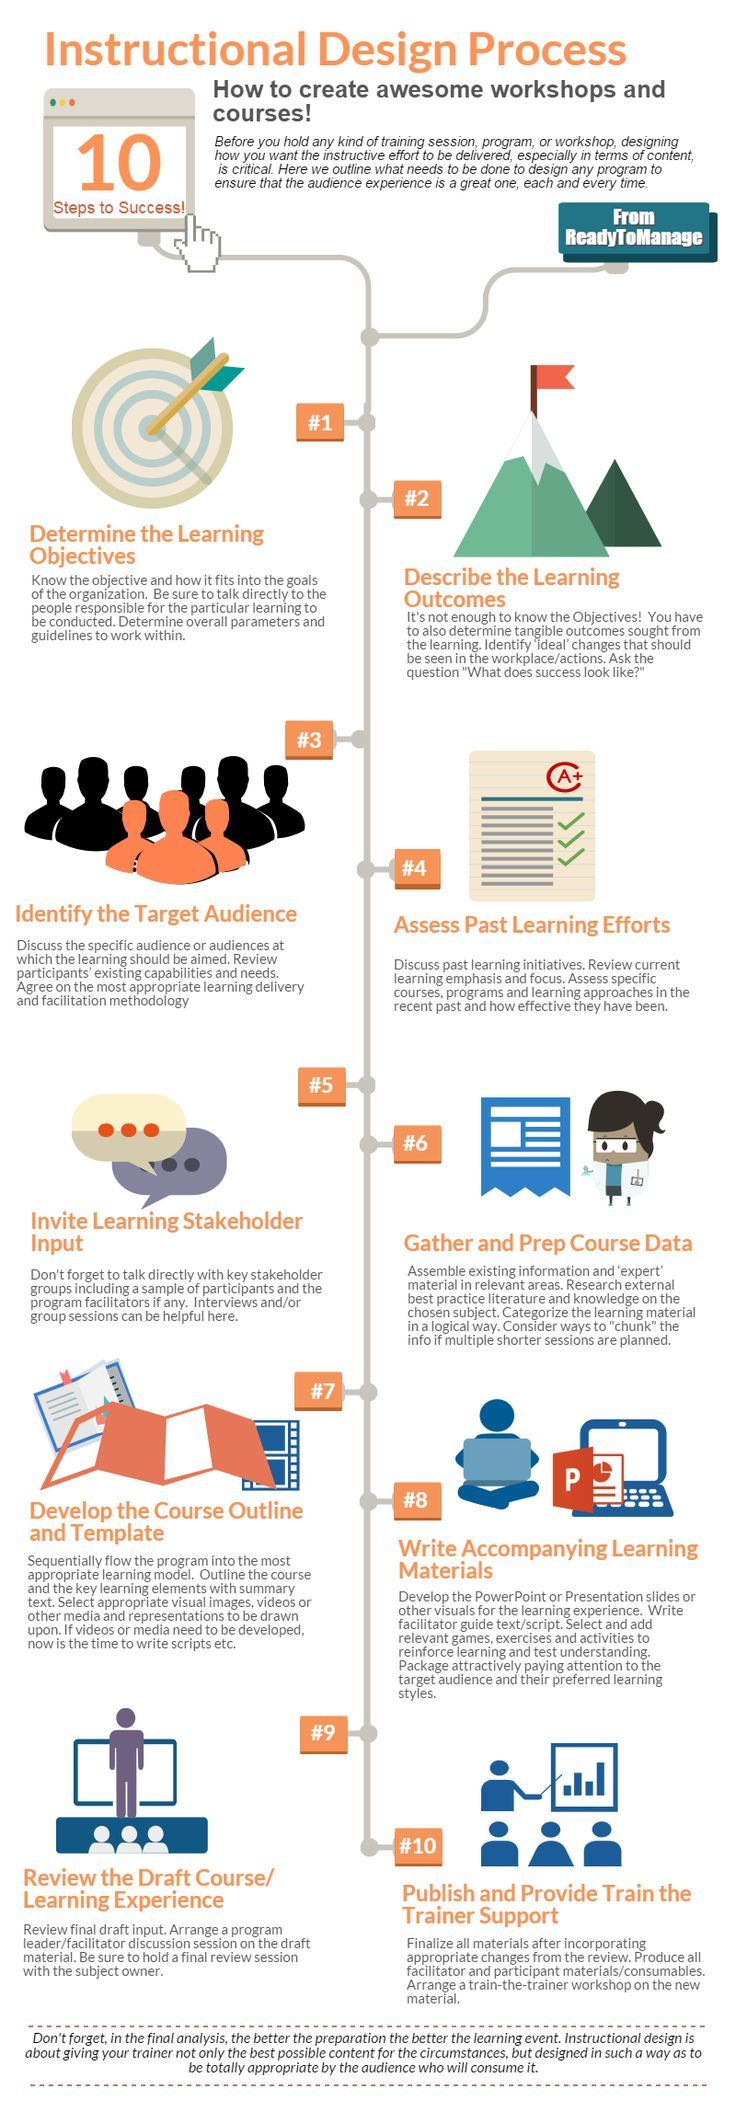 Why Is Good Instructional Design More Important Than Ever In The Modern World Infographic Elea Training Design Instructional Design Instructional Technology